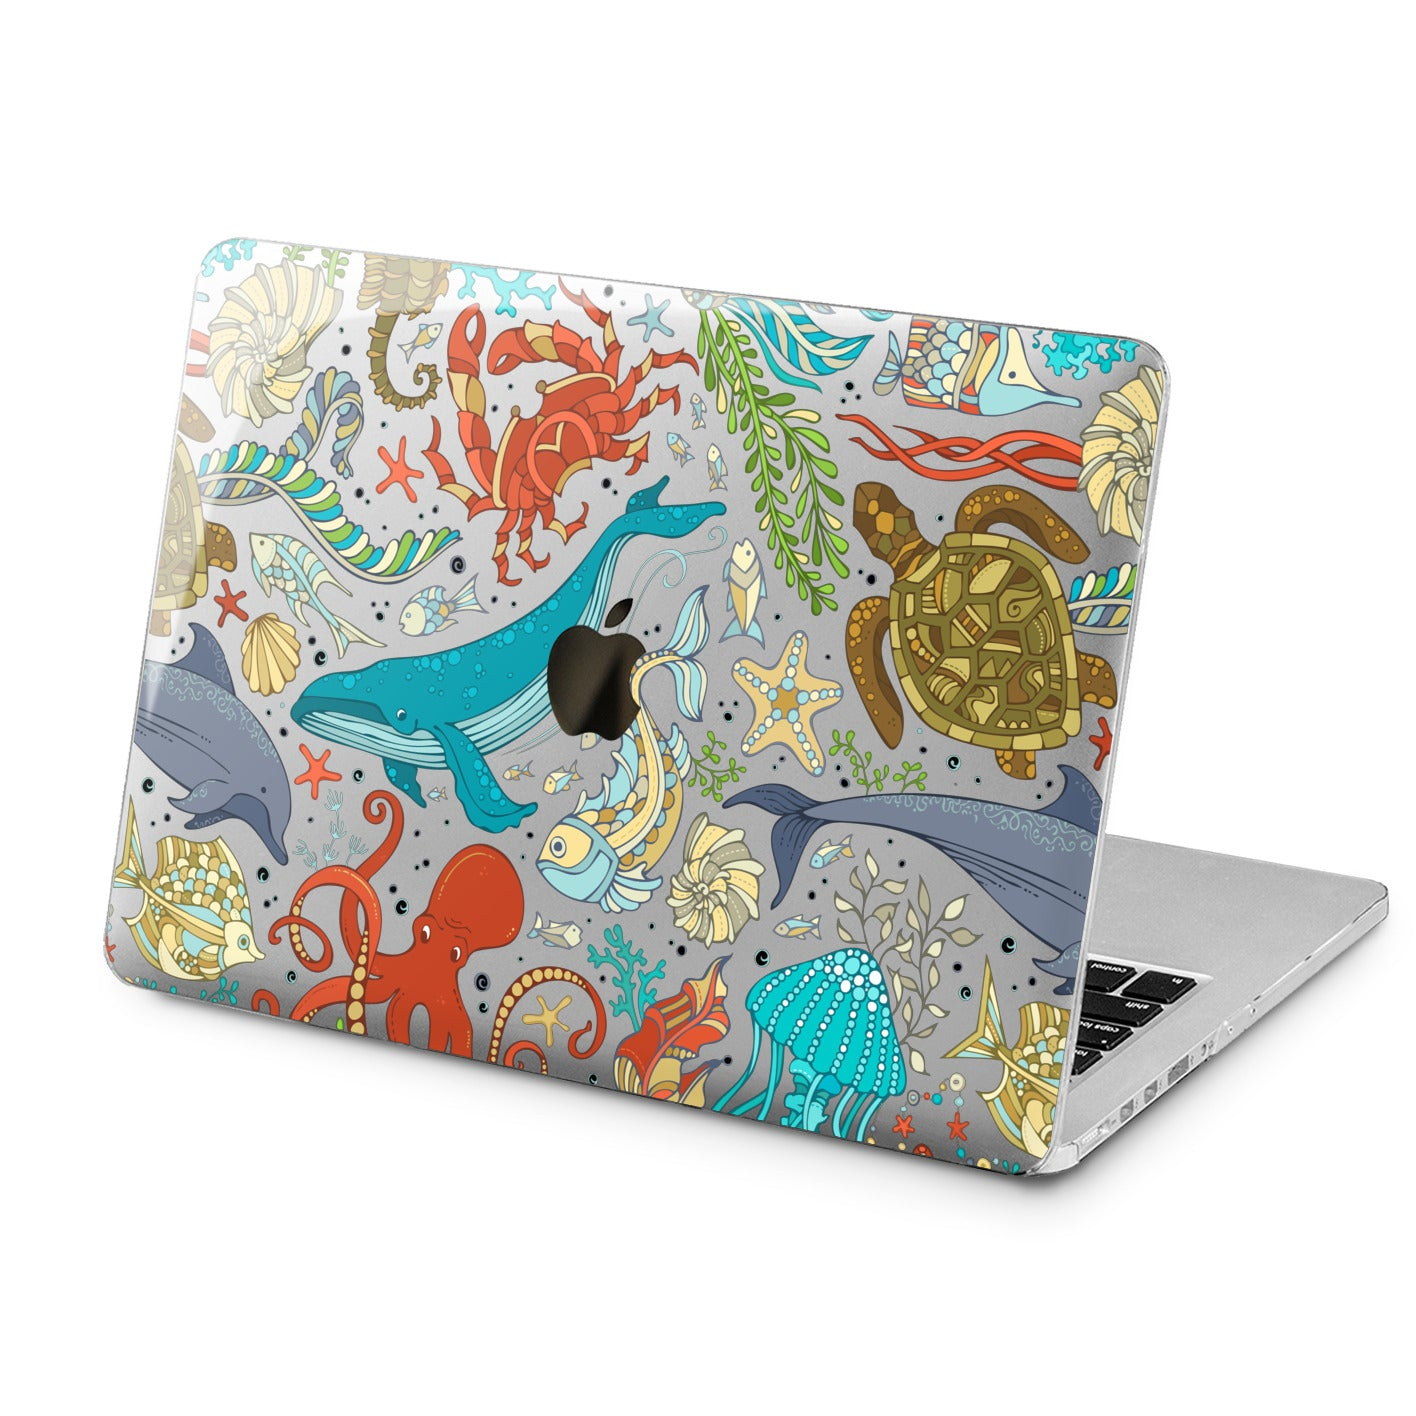 Lex Altern Lex Altern Ocean Animals Print Case for your Laptop Apple Macbook.